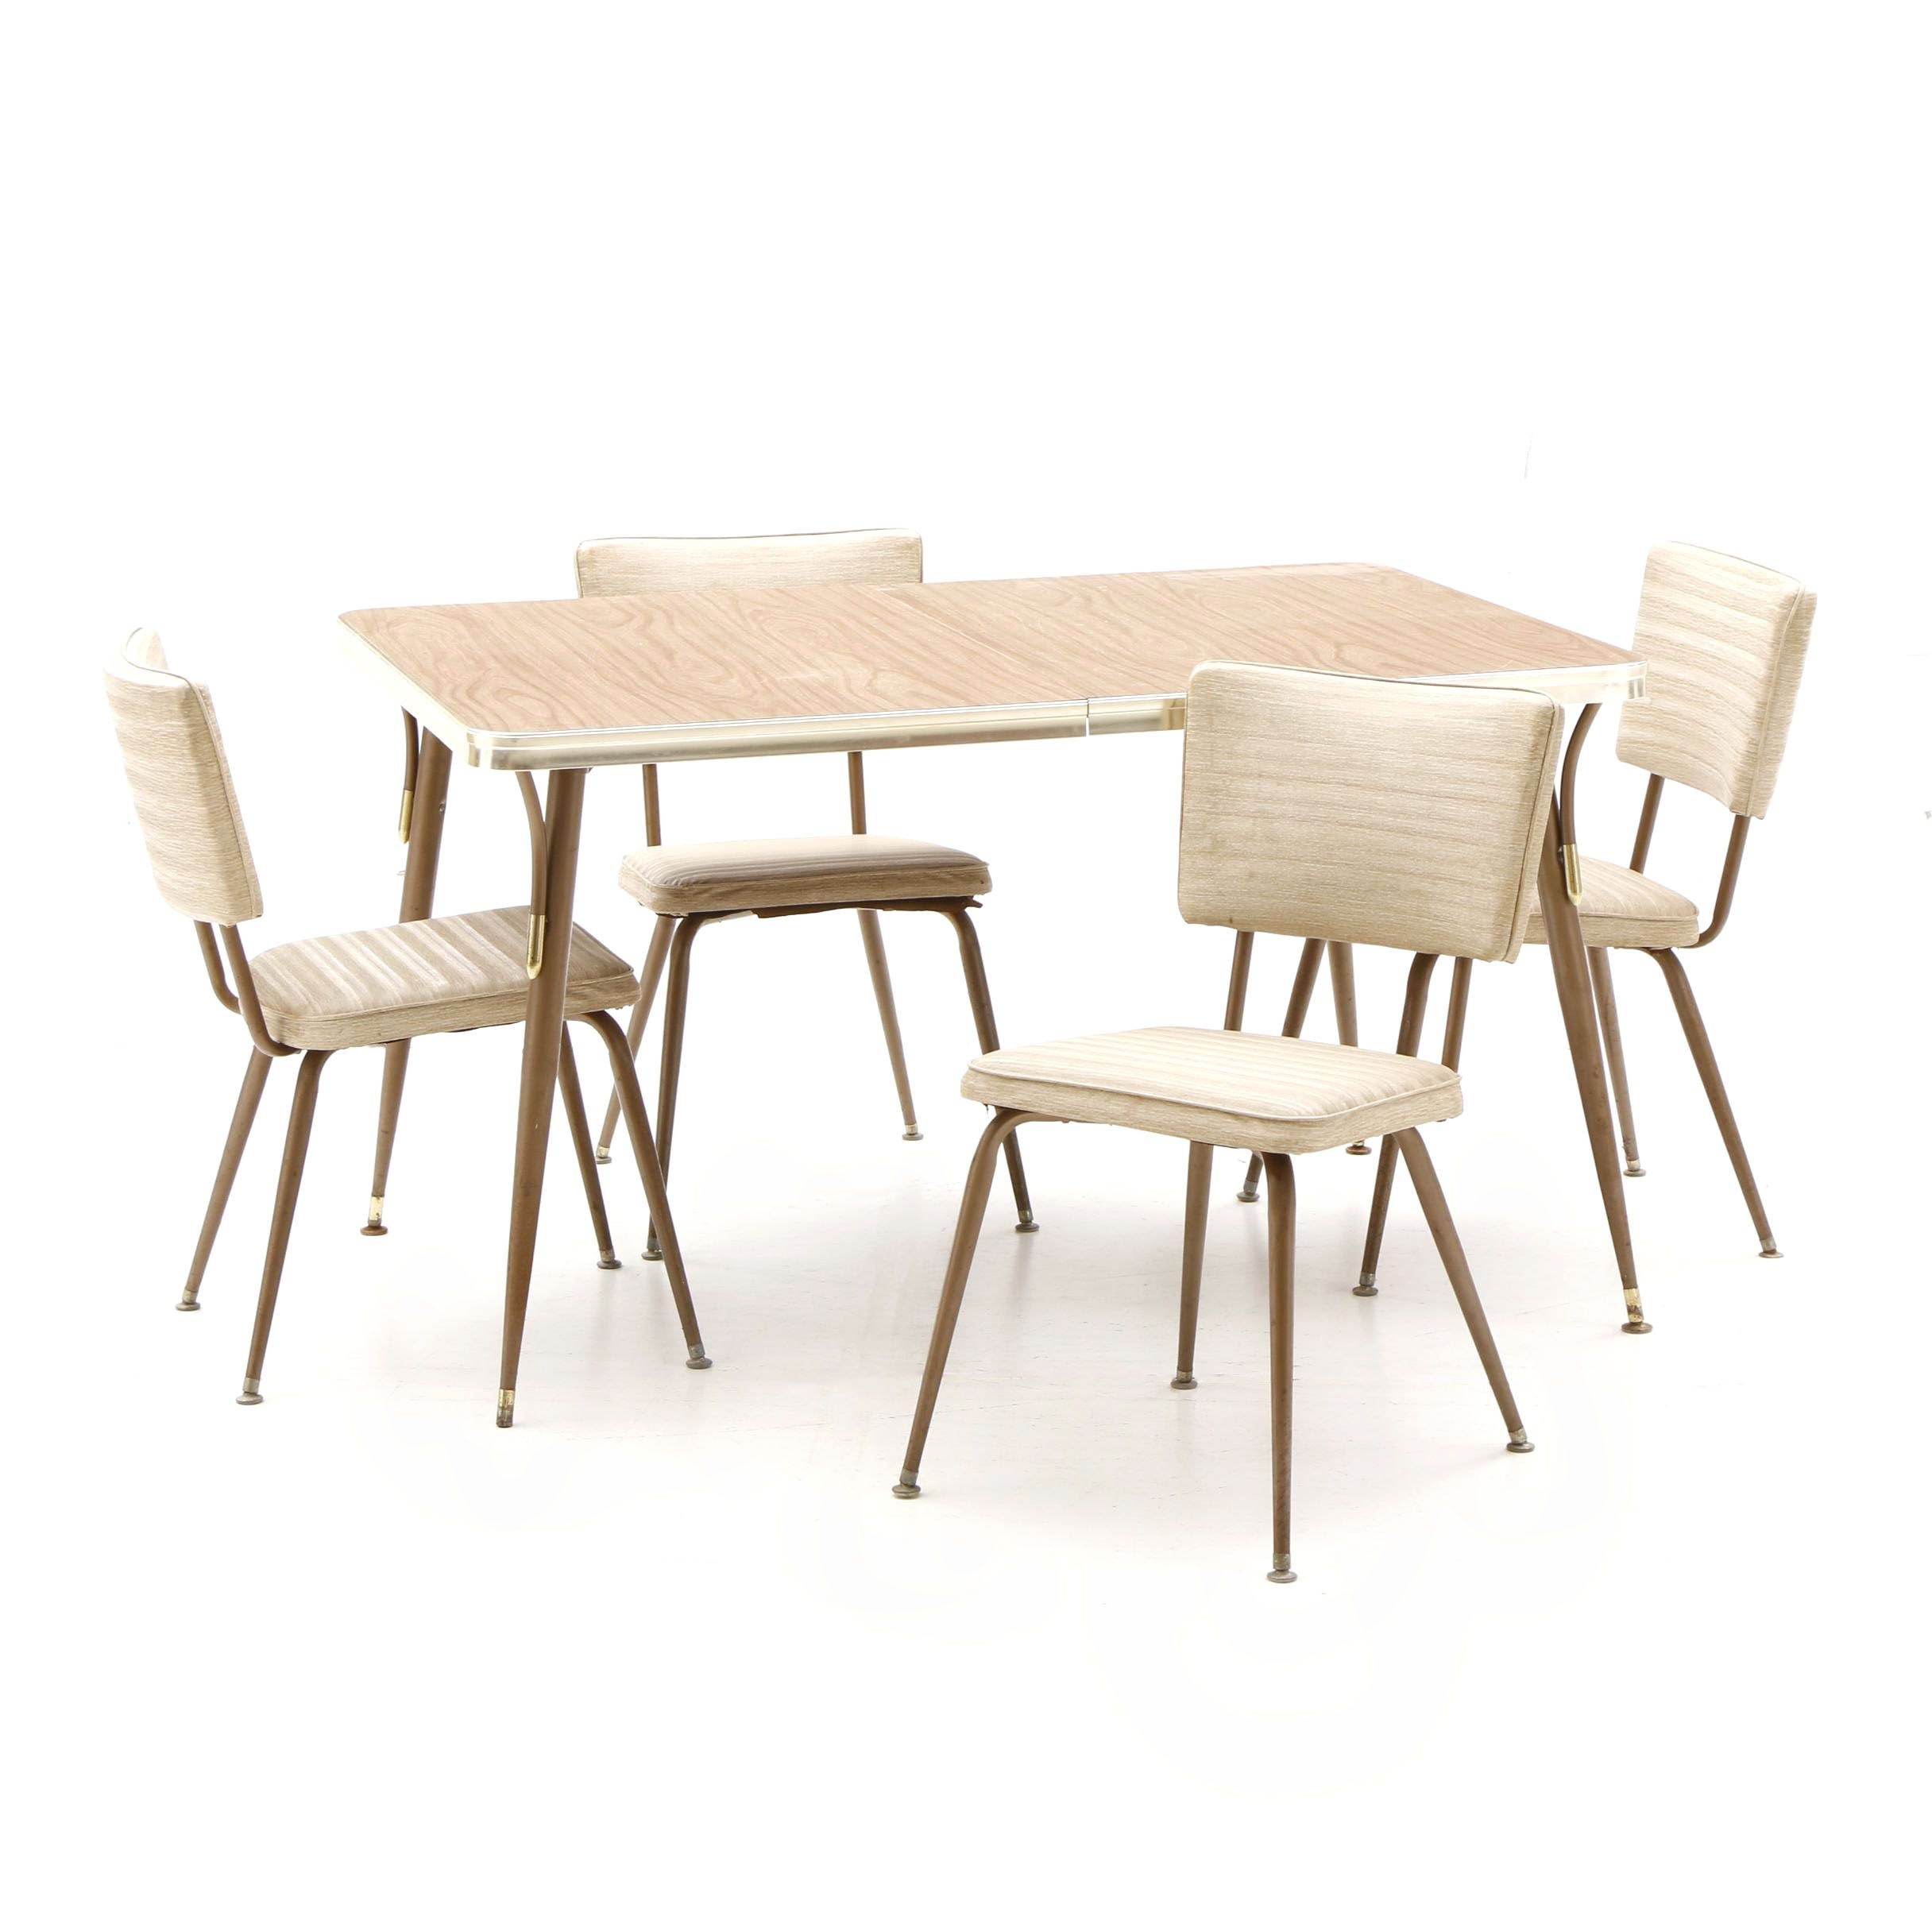 Mid Century Modern Metal and Laminate Dining Set by Daystom, Mid 20th Century